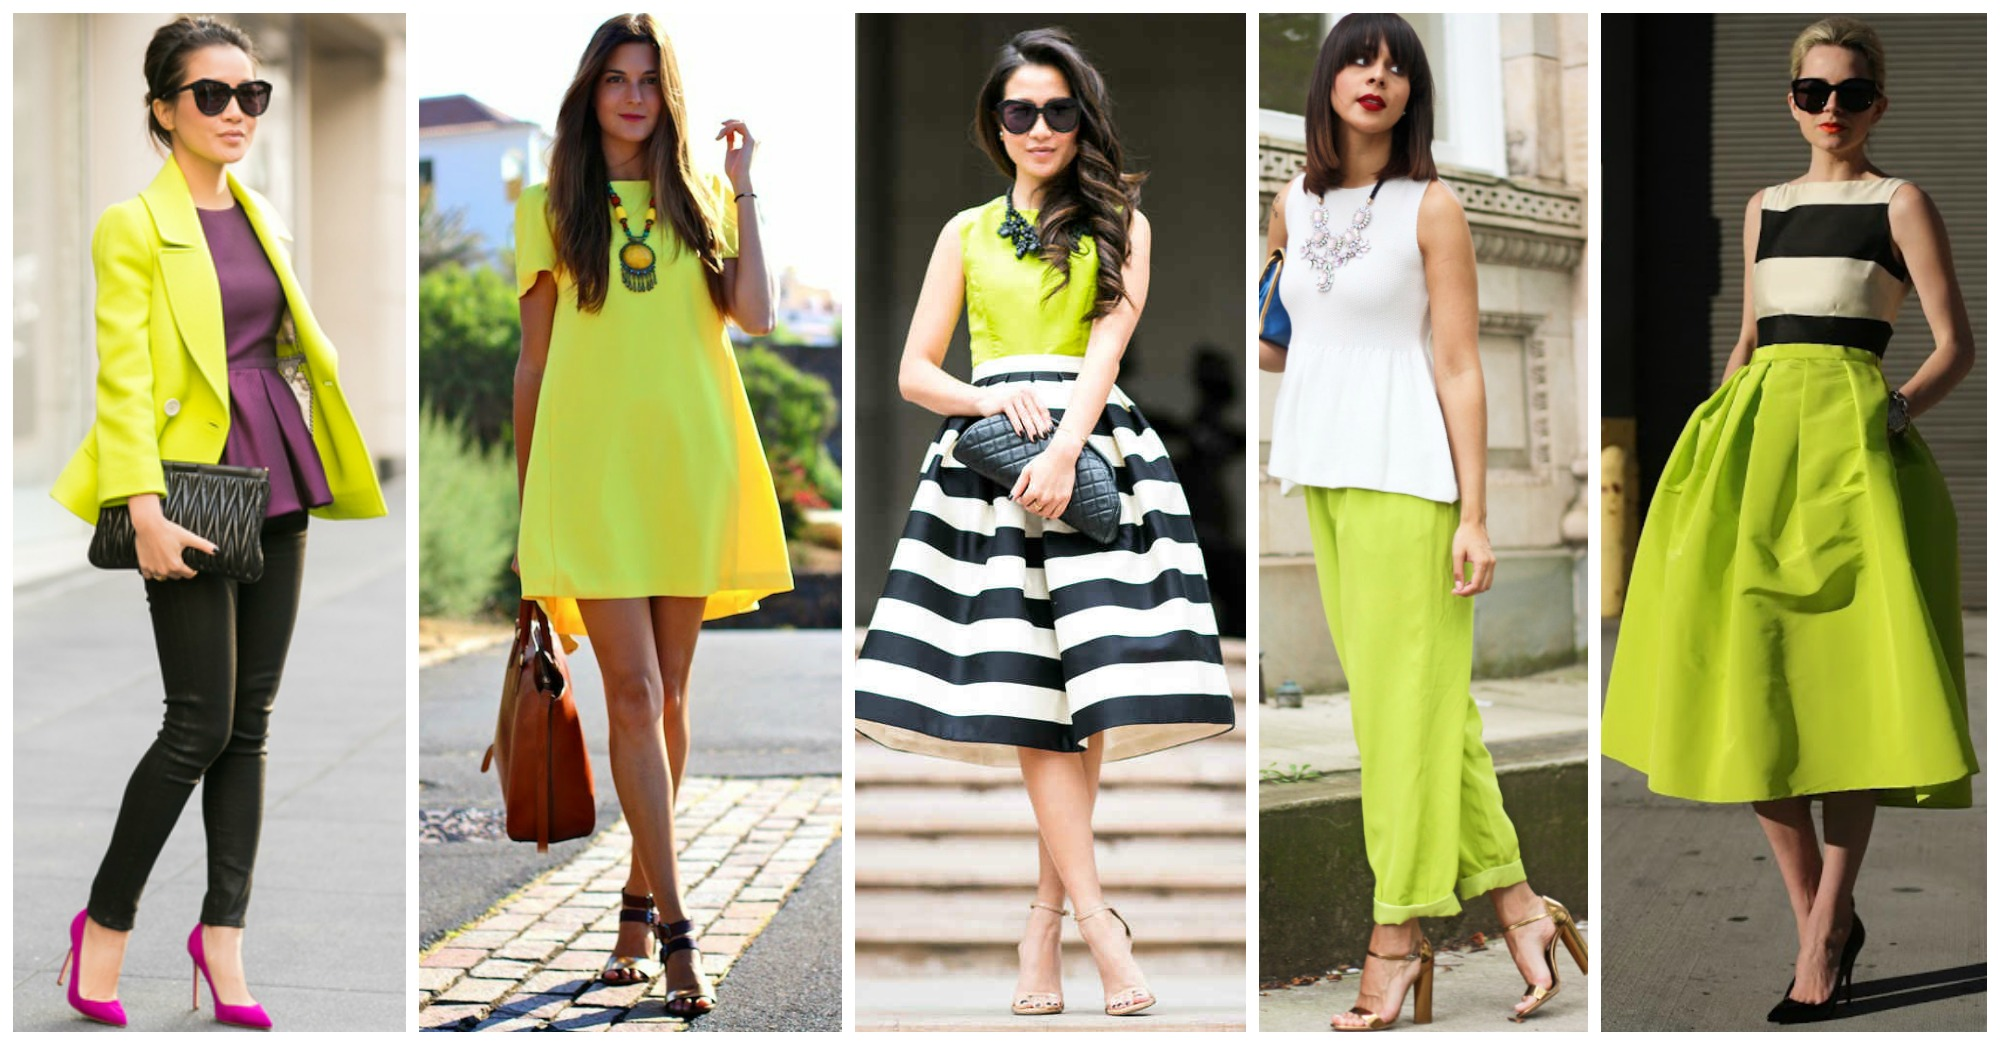 10 Outstanding Outfit Ideas to Wear Lime This Summer